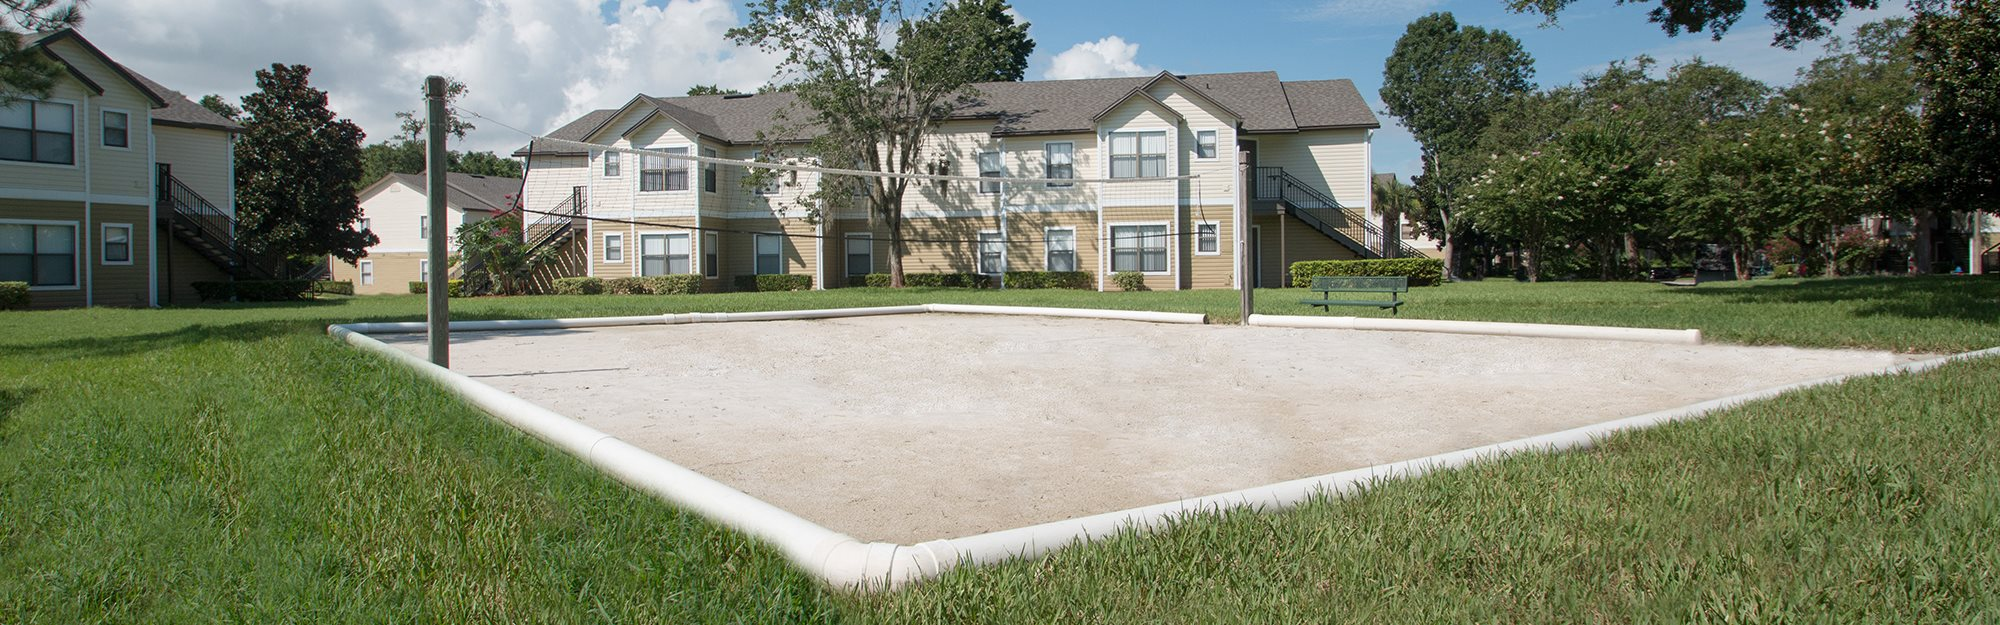 Country Club Apartments for rent in Winter Garden, FL. Make this community your new home or visit other Concord Rents communities at ConcordRents.com. Volleyball court